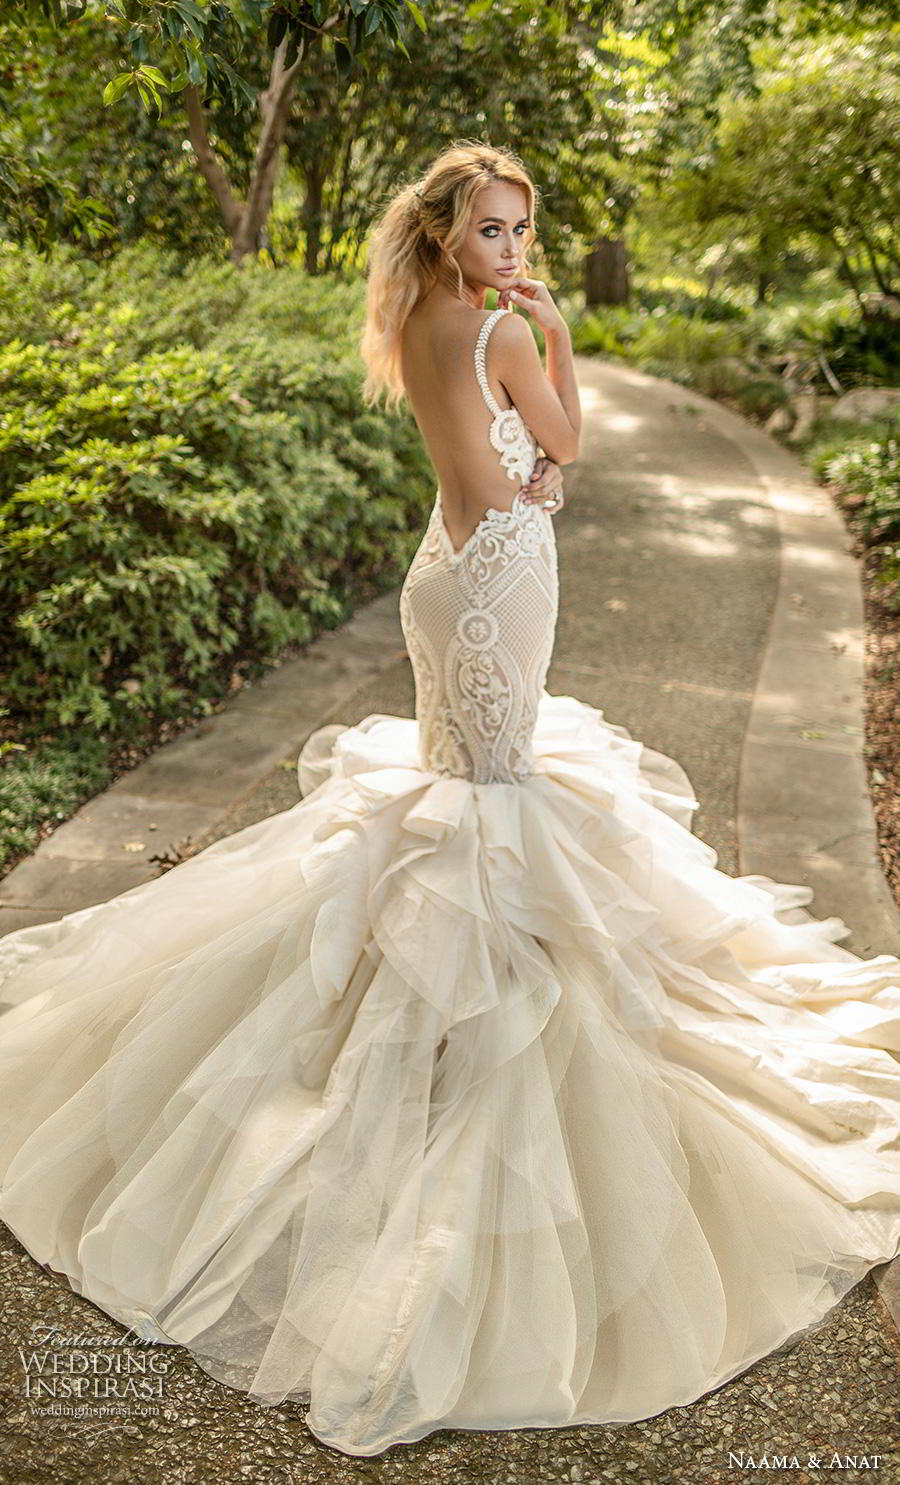 naama anat fall 2019 couture bridal sleeveless with strap sweetheart neckline heavily embellished bodice ruffled skirt romantic mermaid wedding dress backless low open back chapel train (7) bv